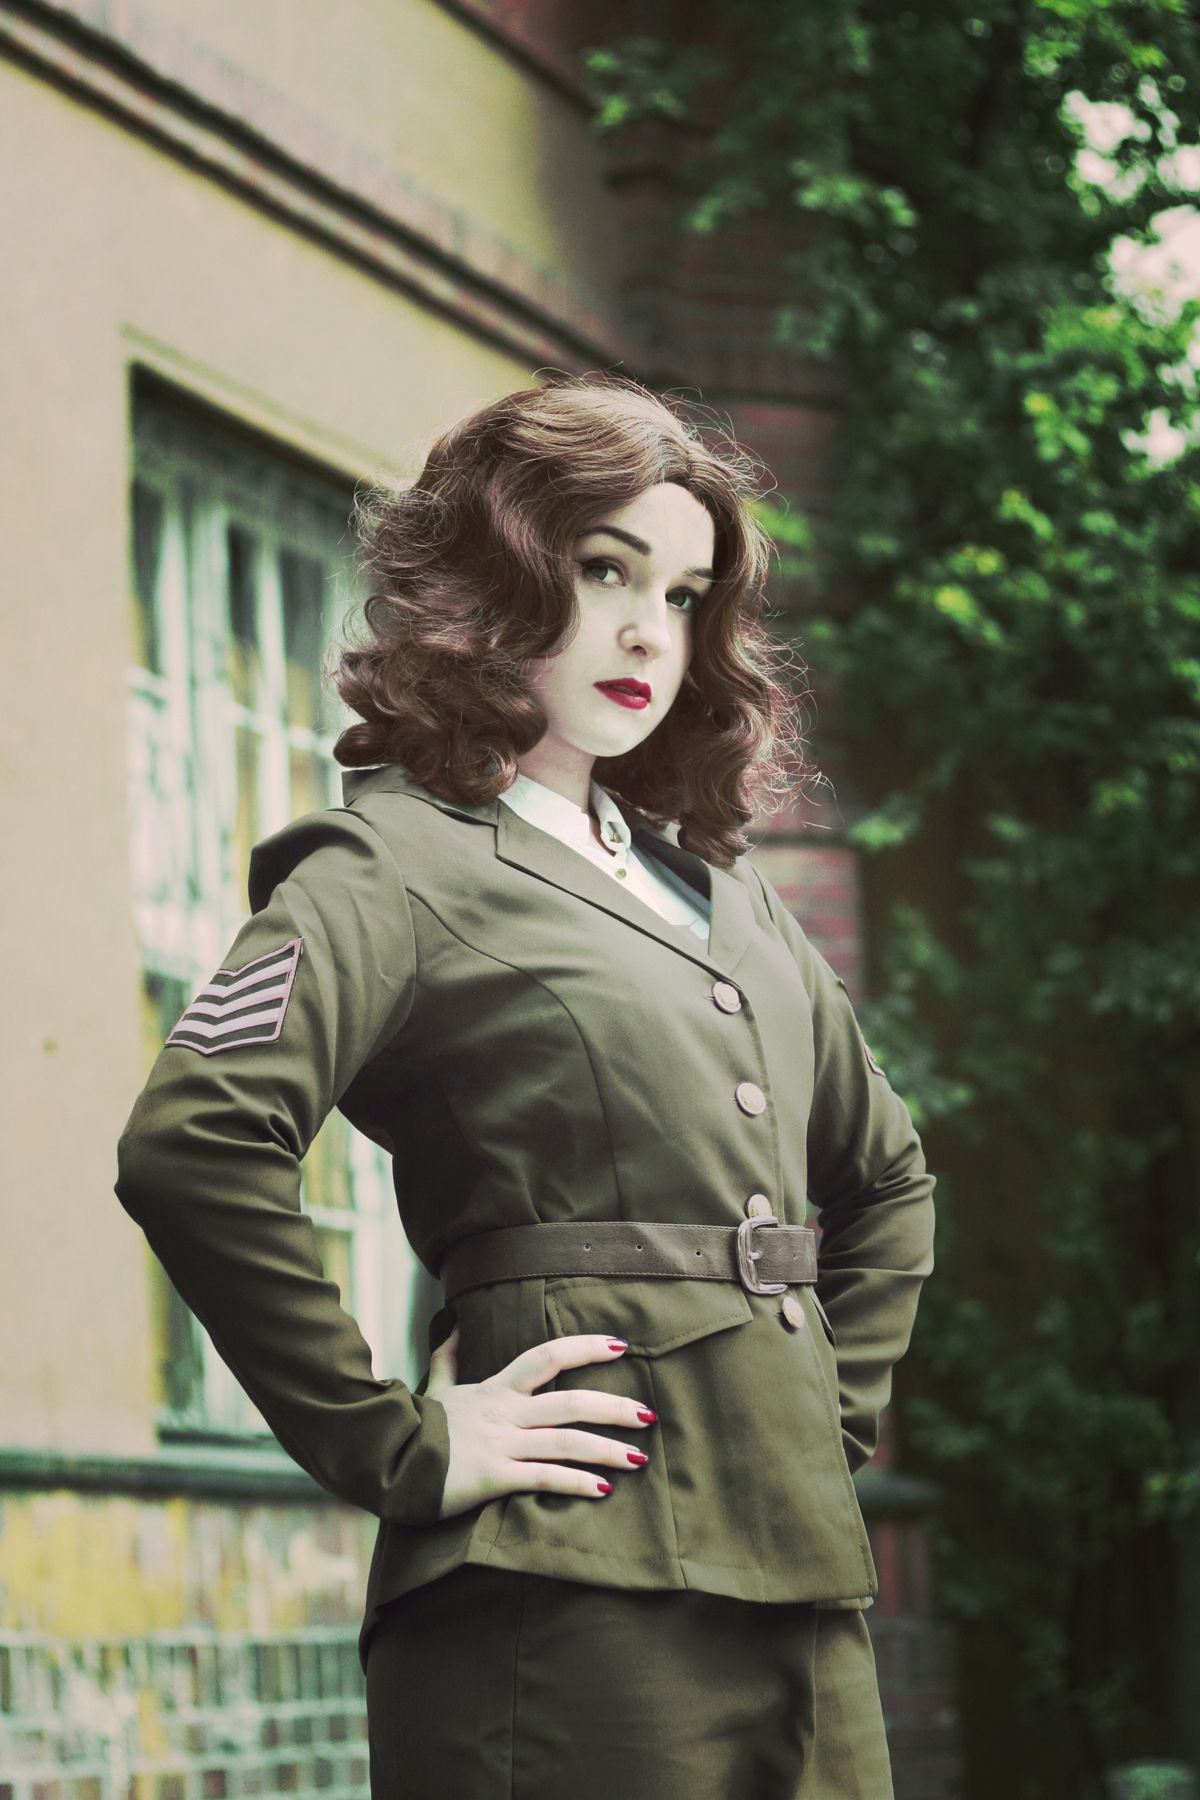 Agent Carter cosplay from MARVEL by @xsilverwolfie , photoshoot for @funidelia || #cosplay #agentcarter #peggycarter #marvel #captainamerica #avengers #shield #uniform #silverwolfie #military #marvelcomics #comics #geeky #geekgirl #portrait #costume #worldwar2